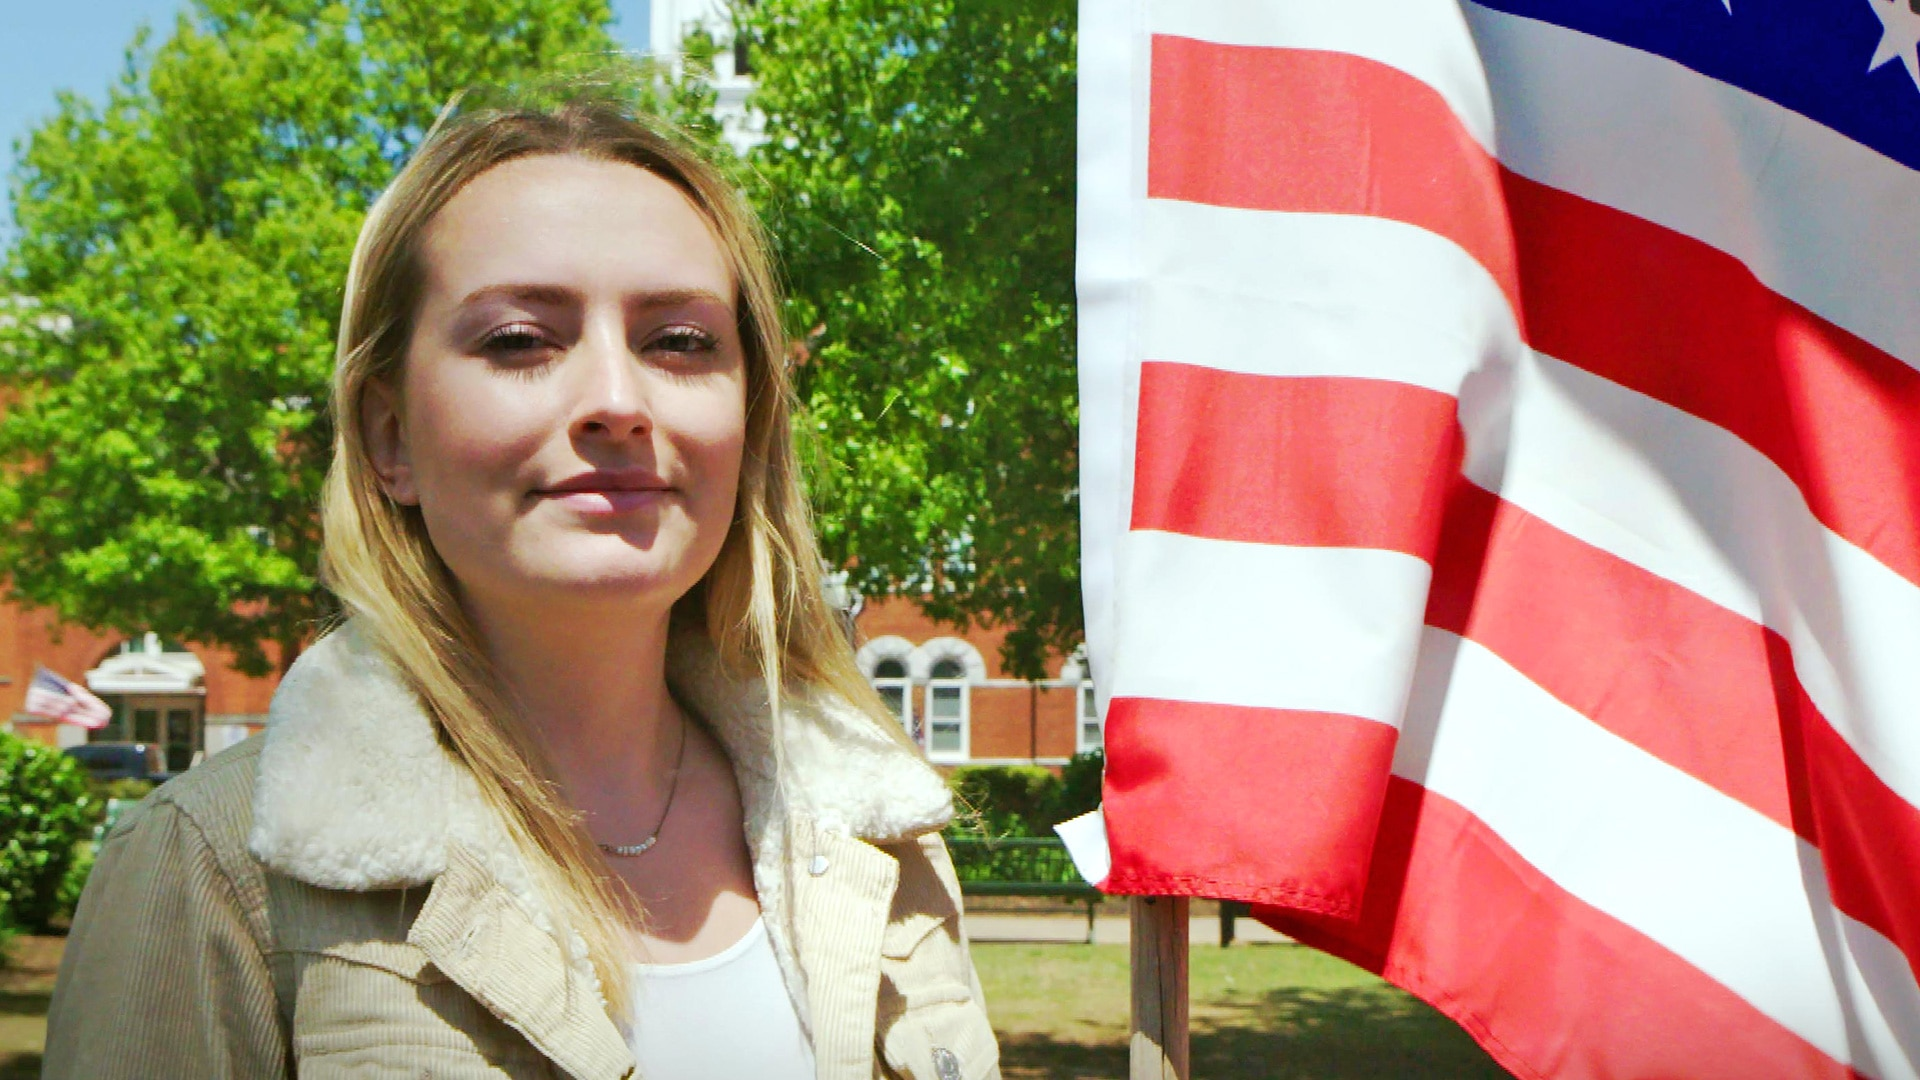 Amelia Dimoldenberg stands next to an American flag